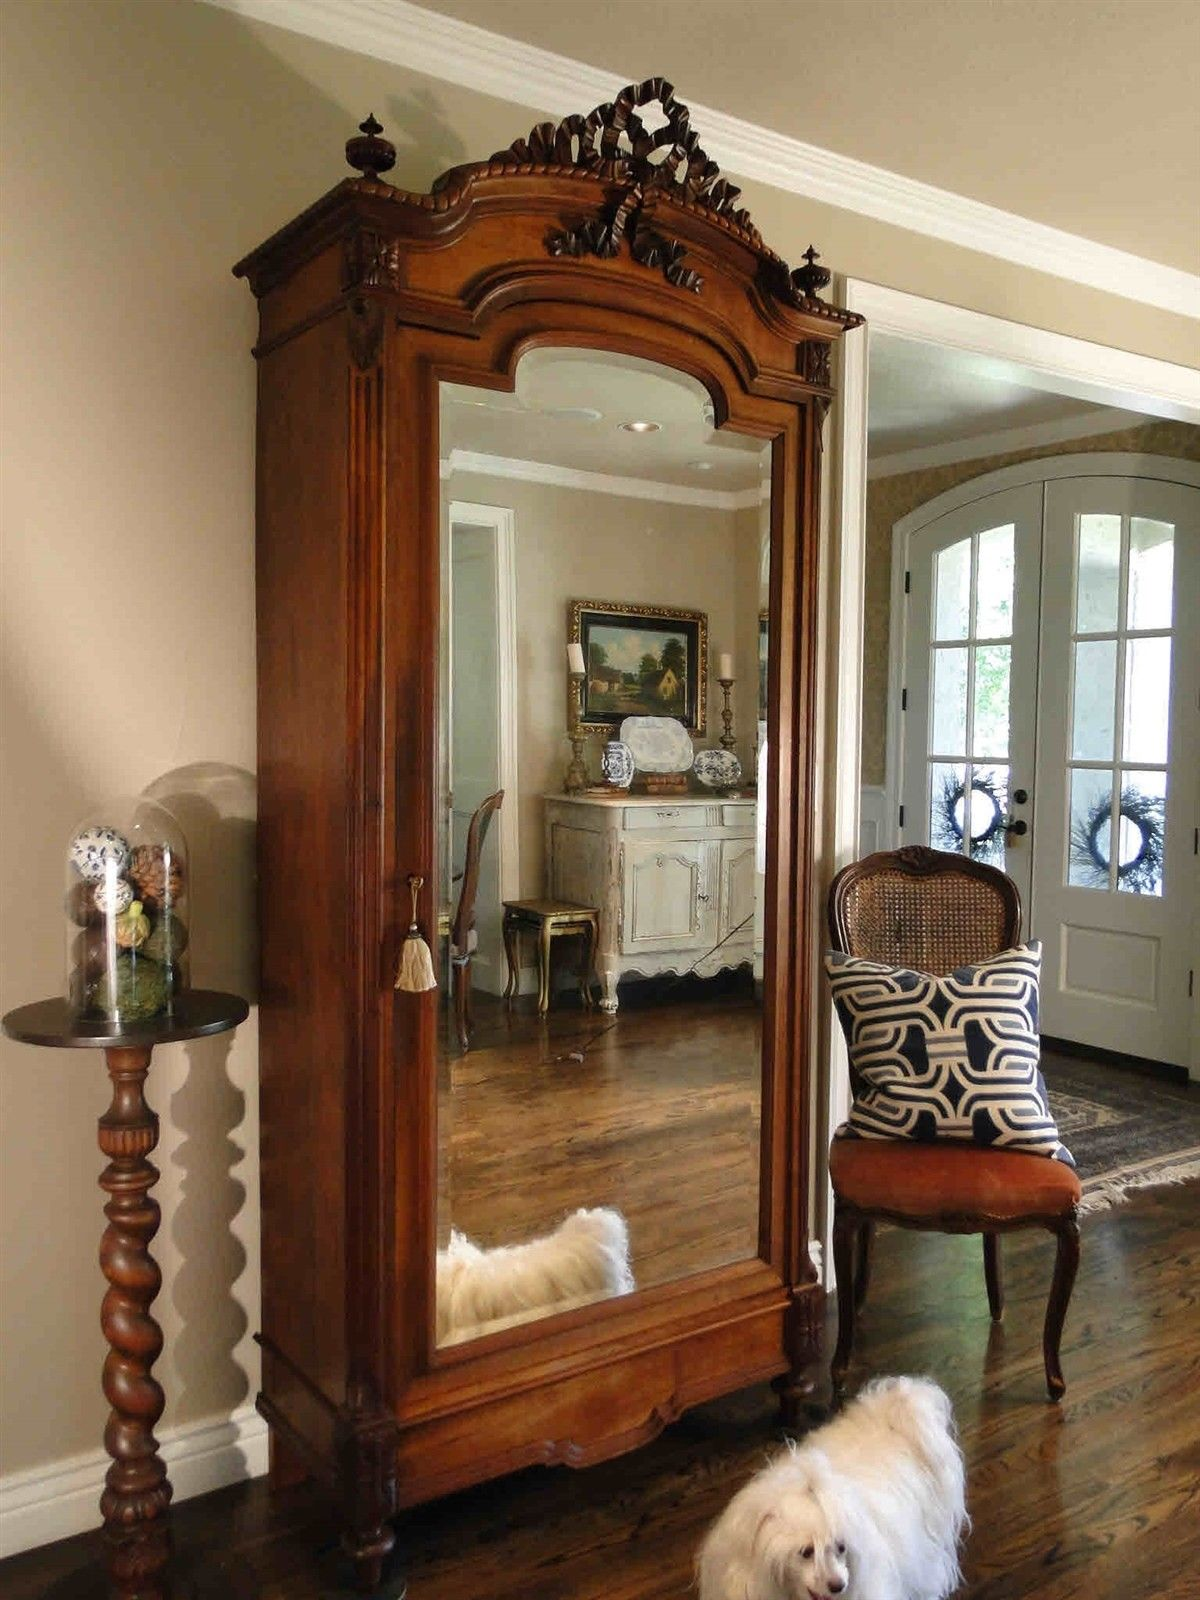 Antique French Armoire Wardrobe Bow Carving Mirrored Door w/key Fitted Inside